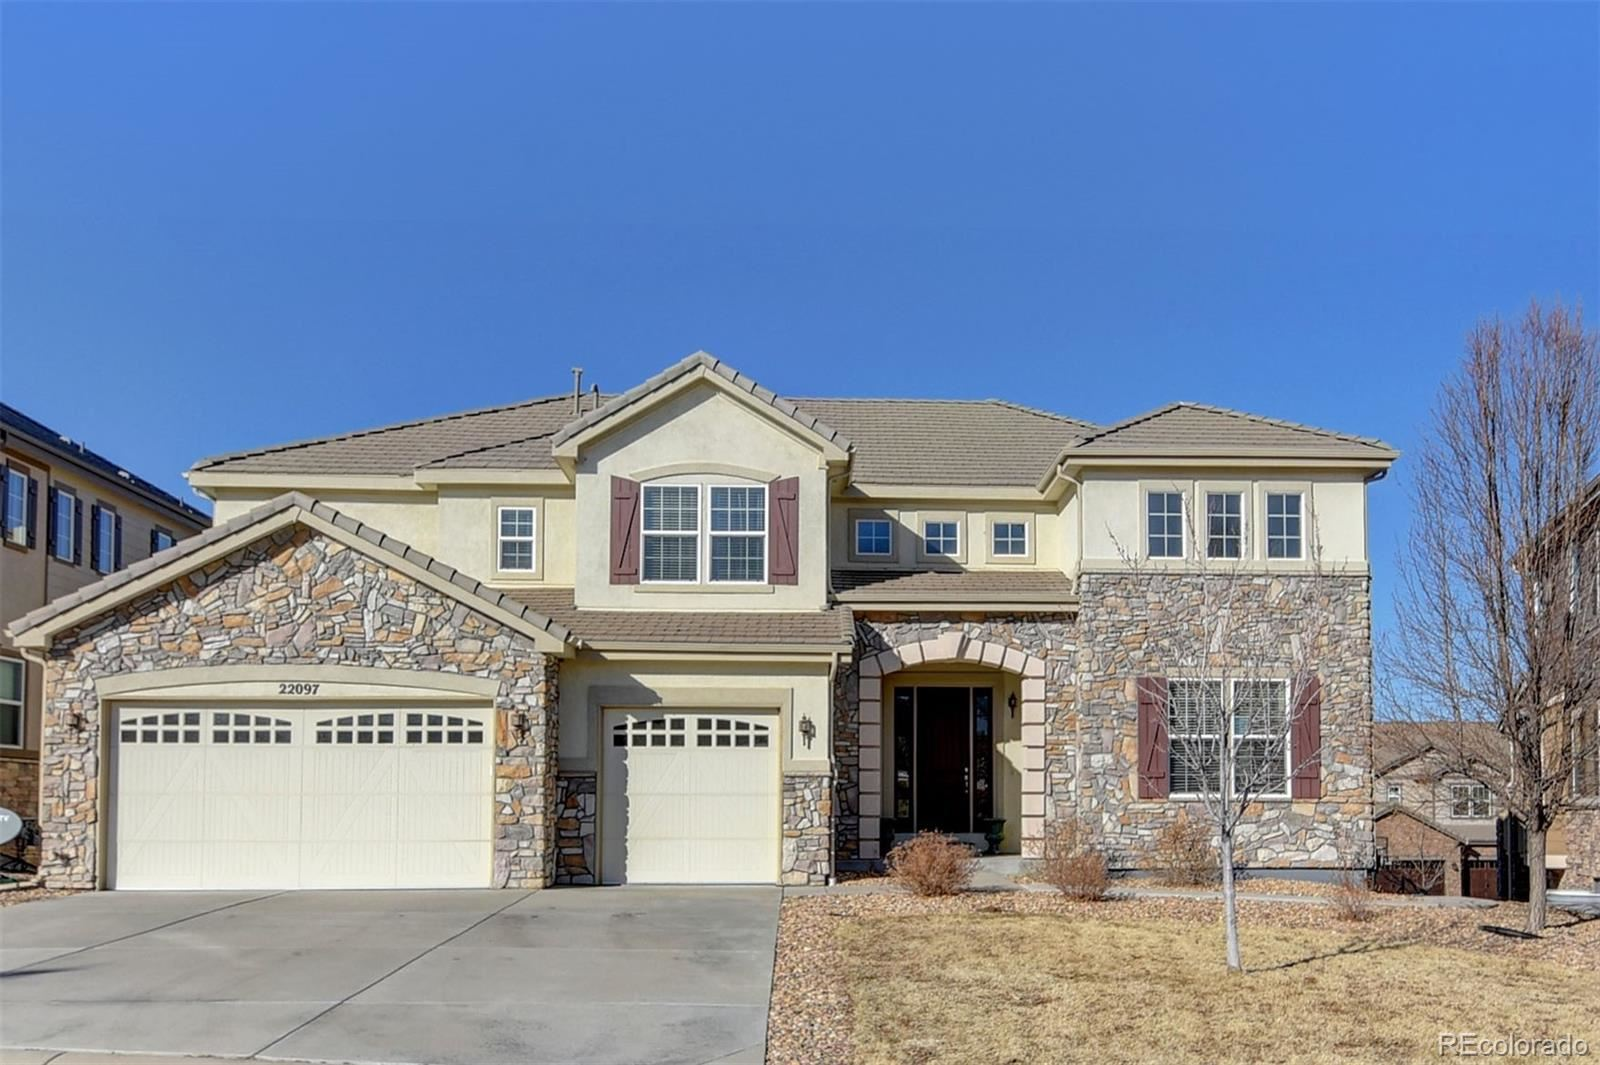 22097 E Easter Circle, Aurora, CO 80016 - #: 8558850